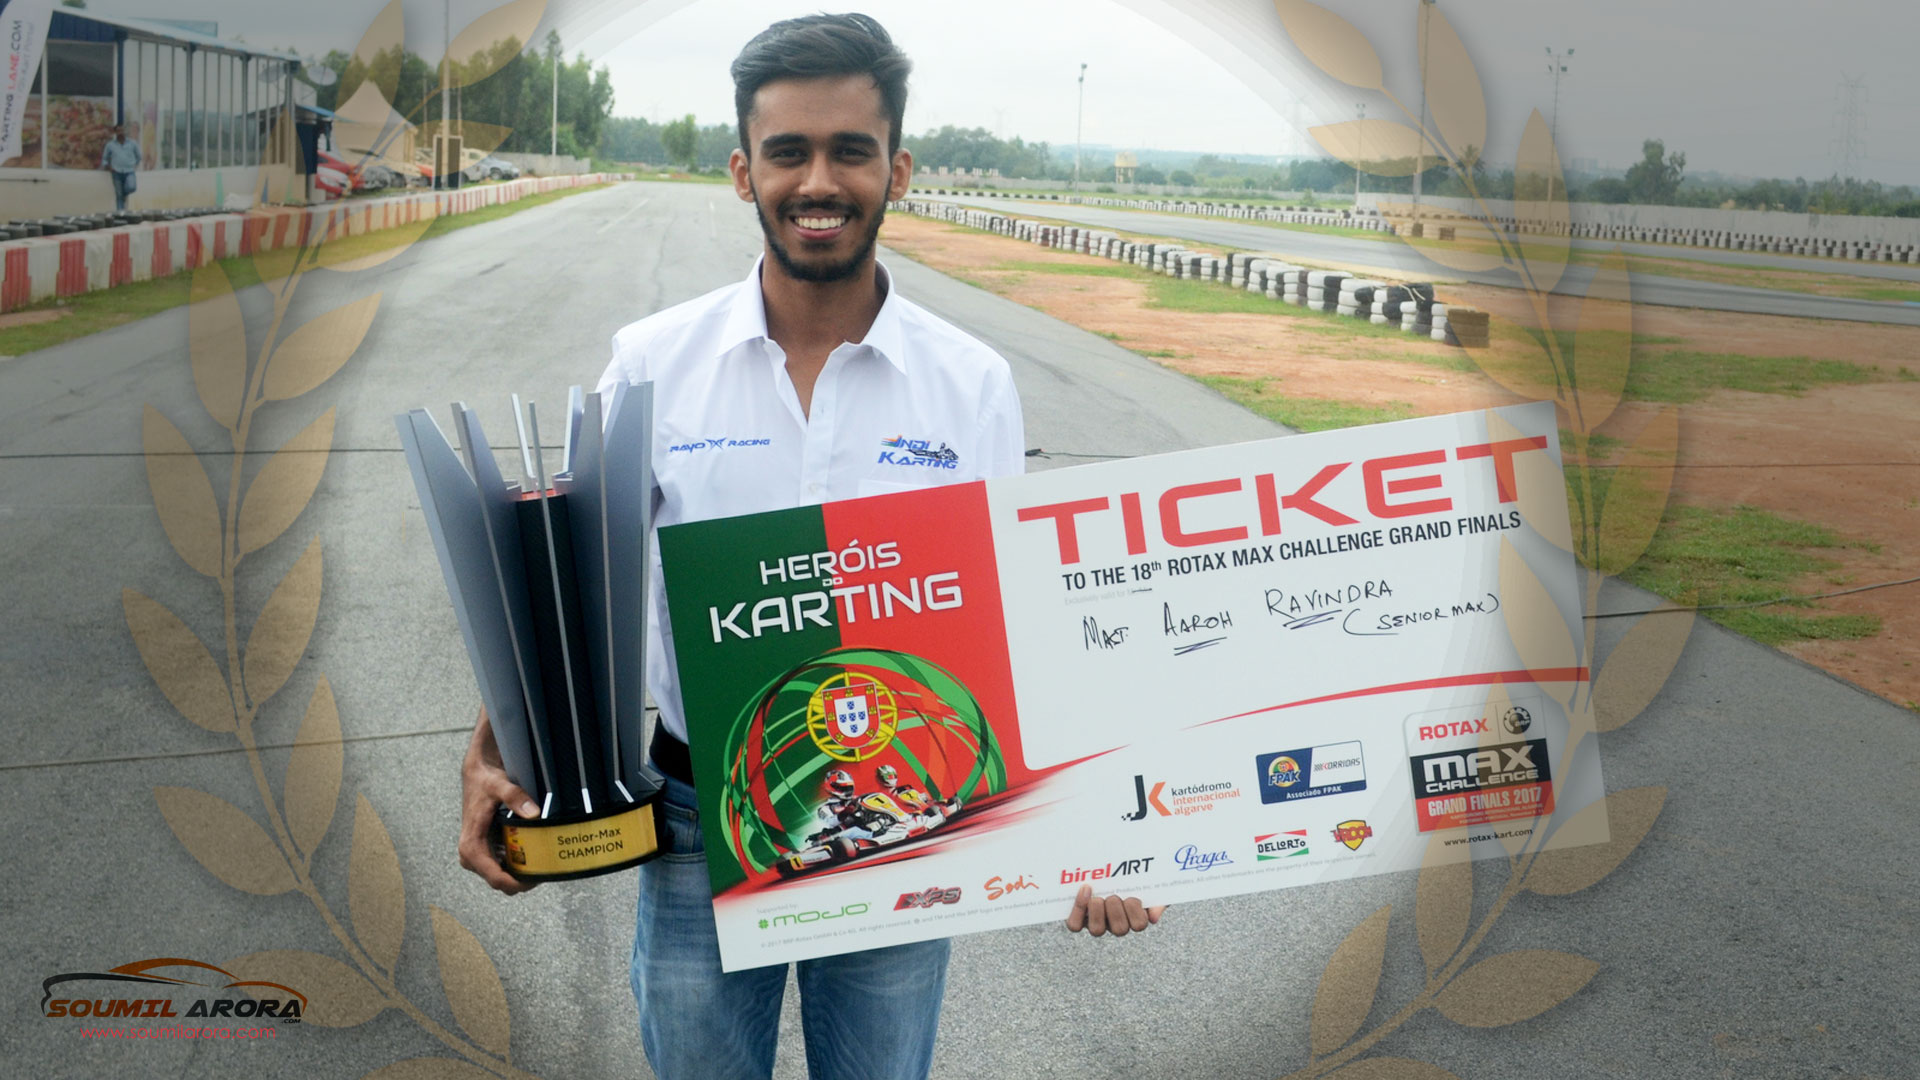 Aaroh gets a ticket to represent India at the World Rotax Finals at the Portimao circuit in Portugal